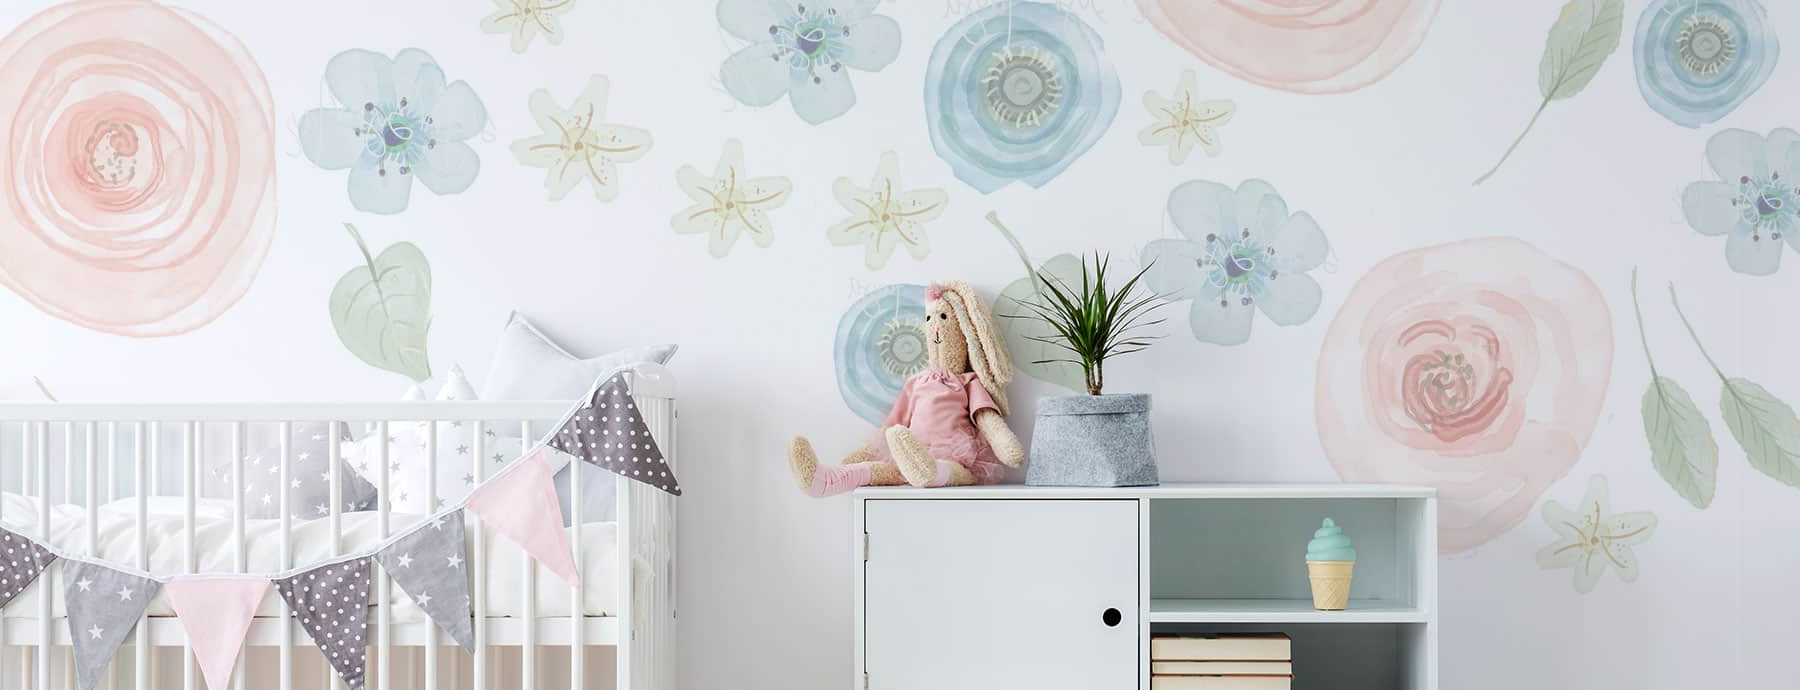 2020 Whimsical Flower Wall Décor Regarding 34 Of The Most Beautiful Flower Wall Decals For Your Kid's (View 19 of 20)